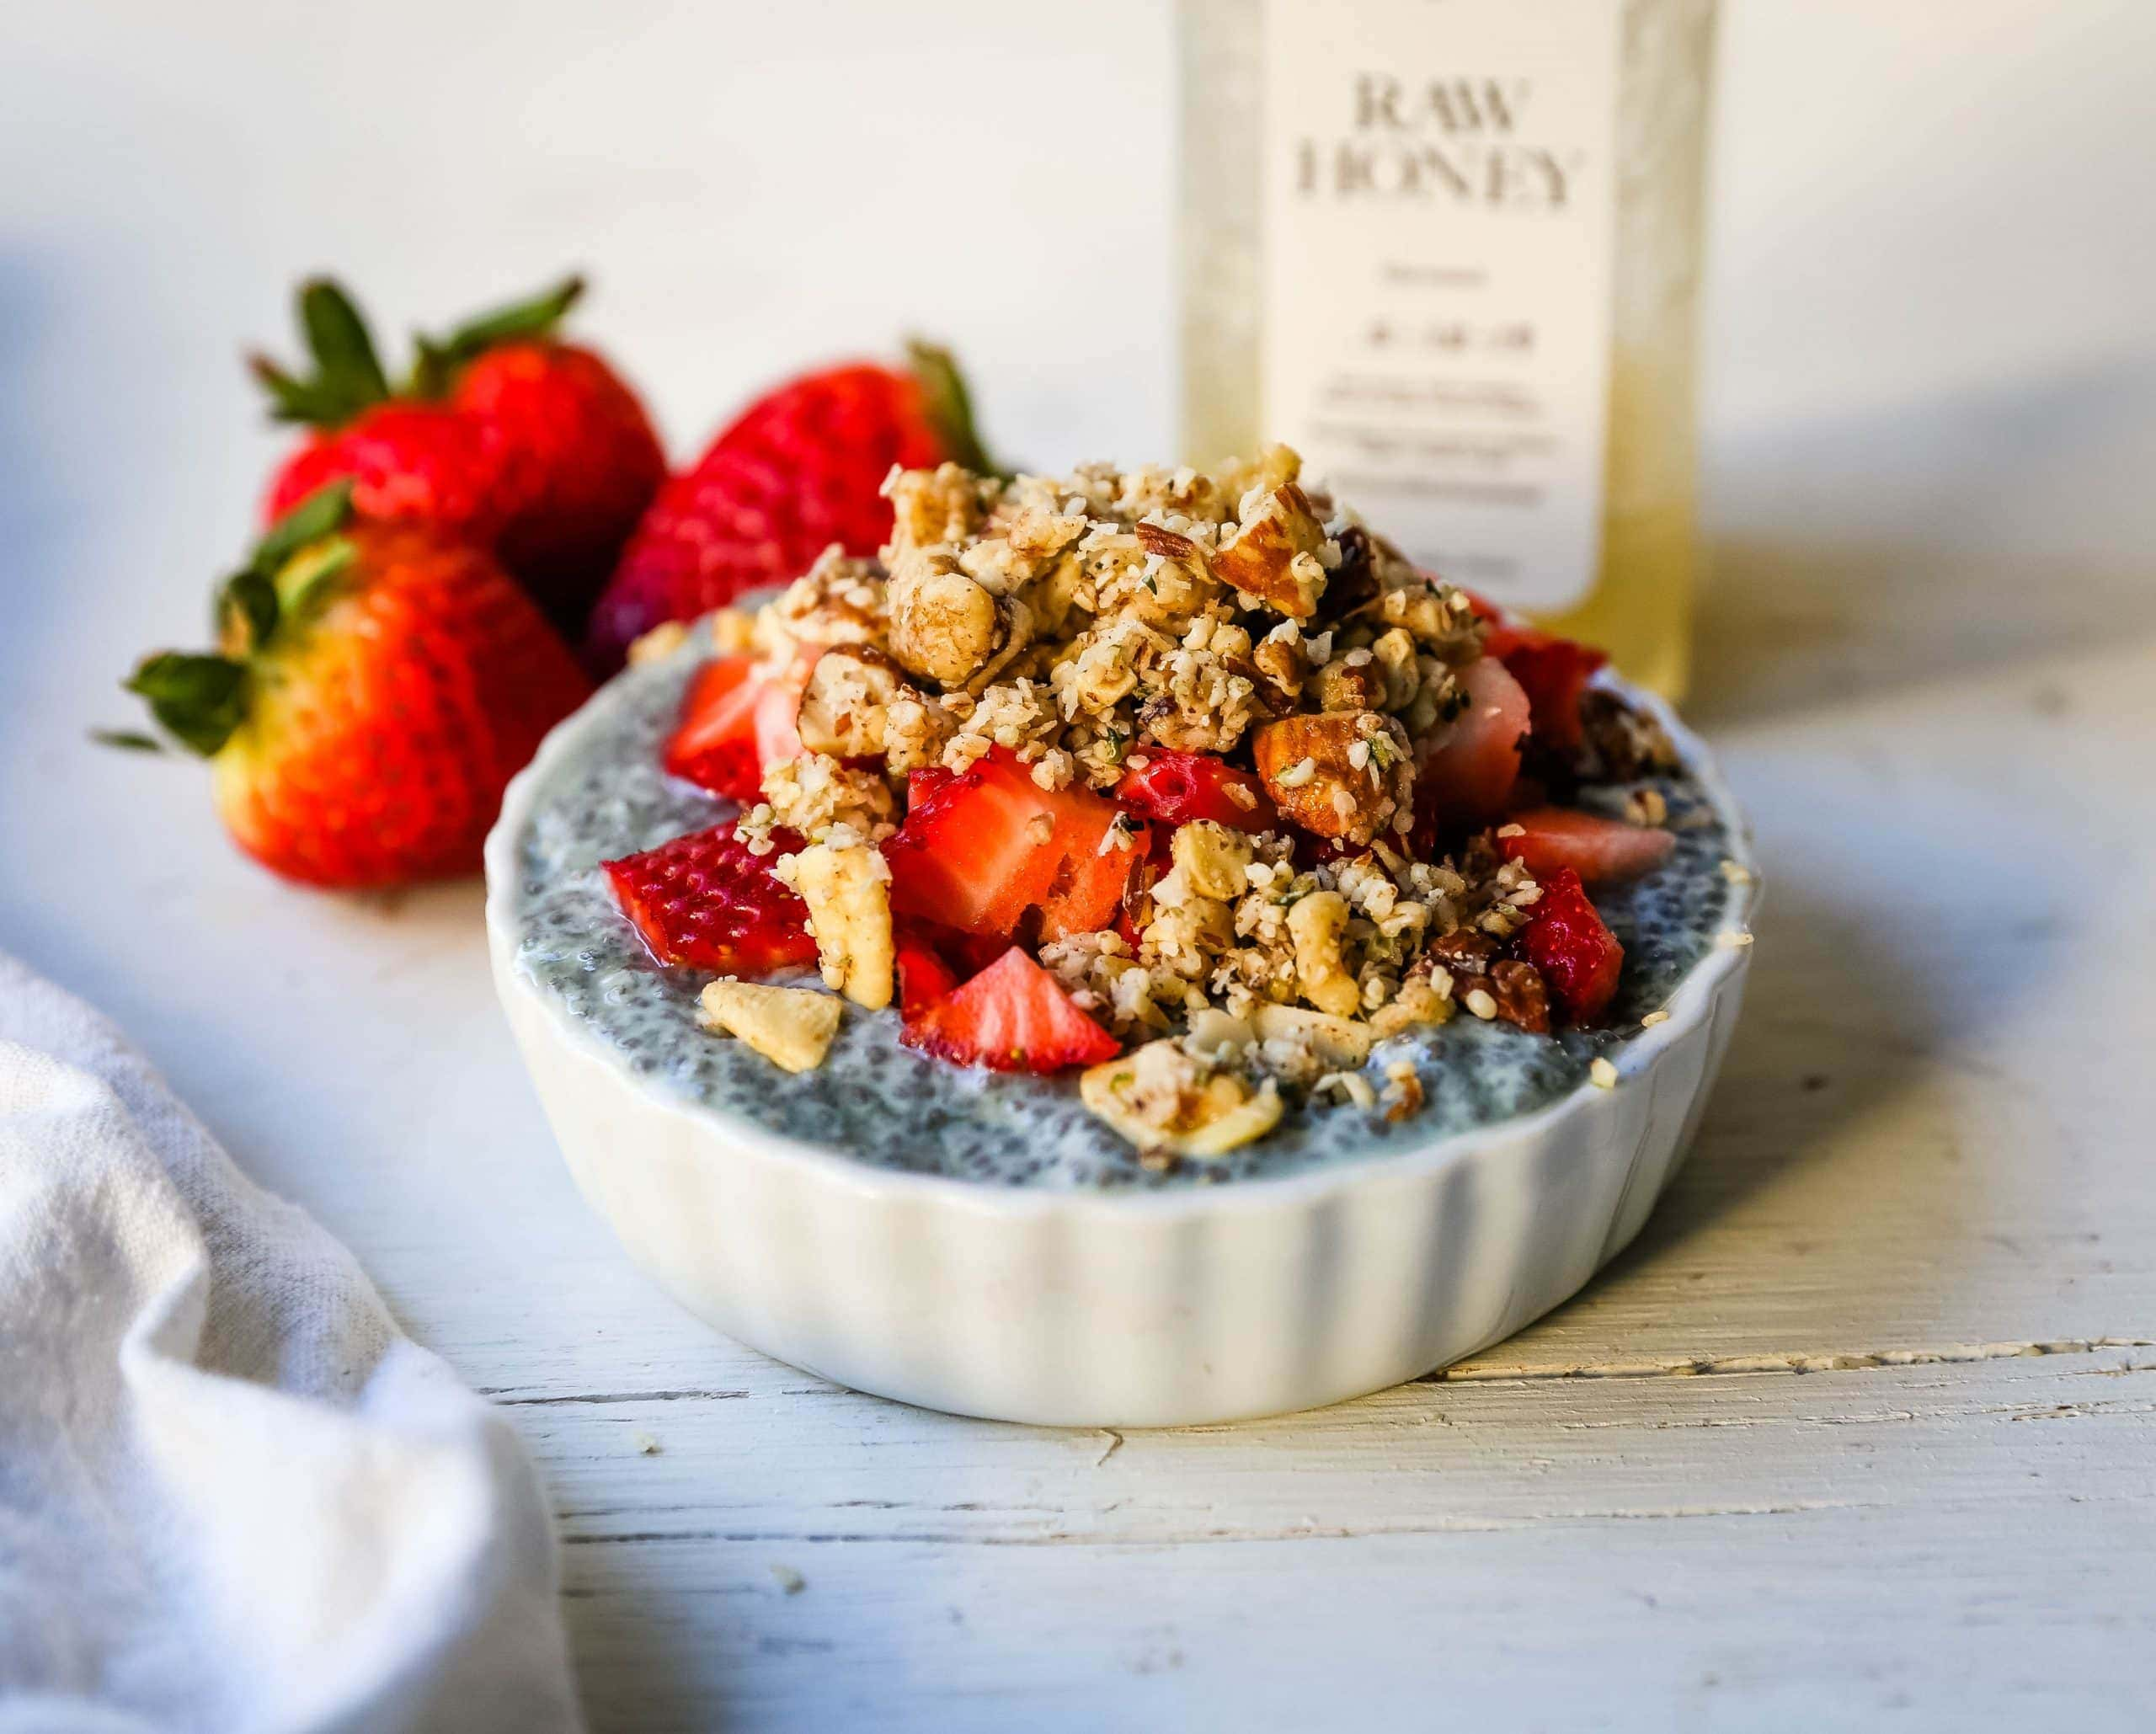 Nutty Coconut Granola Almonds, cashews, walnuts, pecans, coconut, hemp seeds, unsweetened coconut flakes, coconut oil, and honey make this an all-natural snack.www.modernhoney.com #granola #nuttygranola #snack #healthy